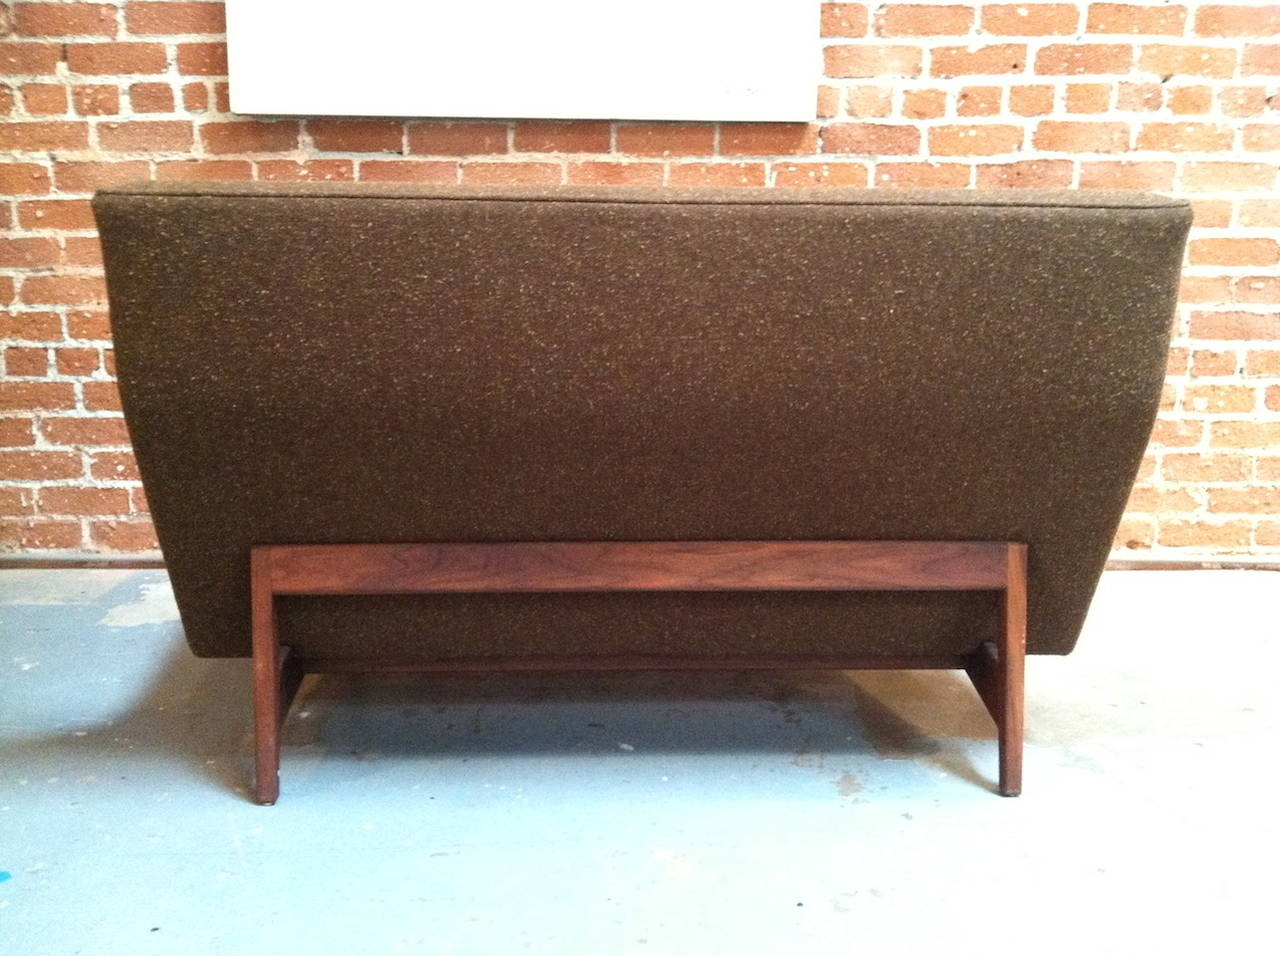 Vintage Jens Risom Danish Modern Armless Loveseat Sofa At 1stdibs